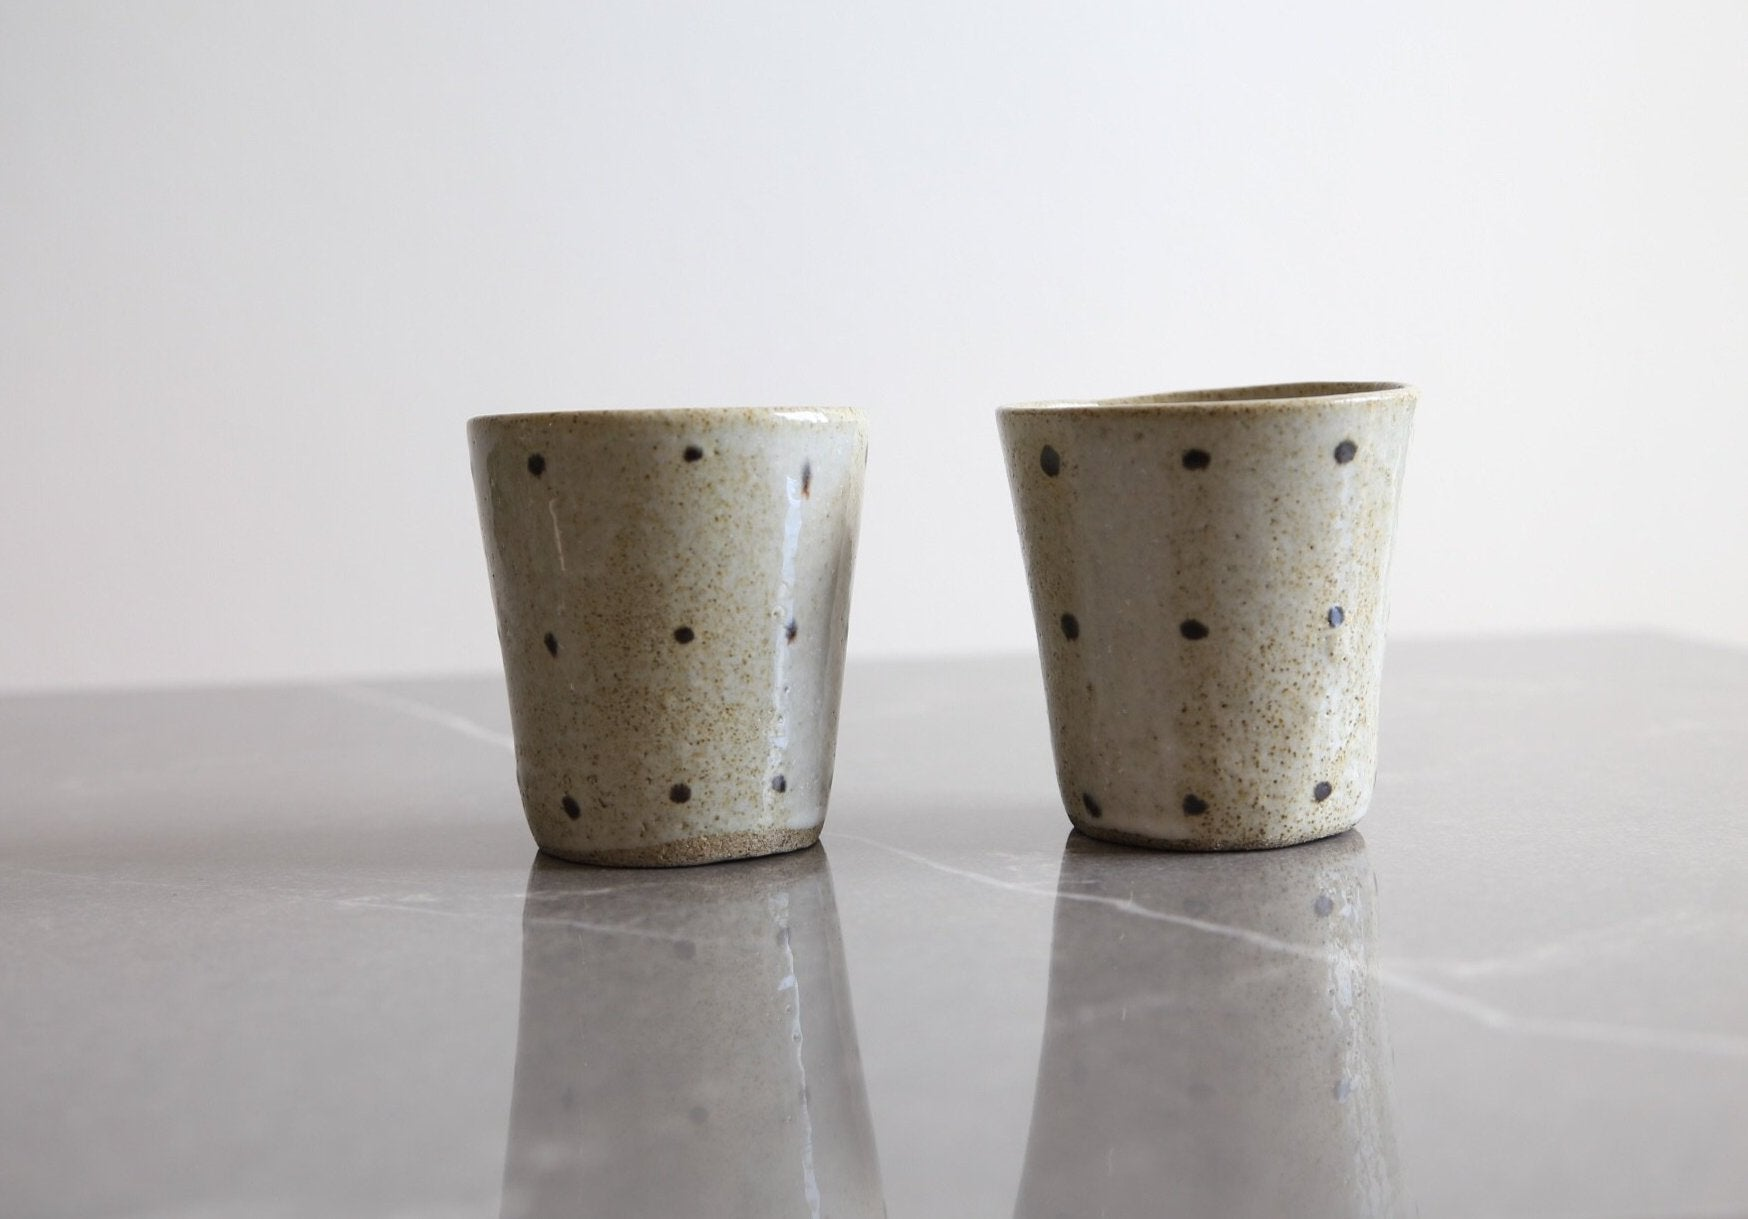 Nordic Rustic Cup with Dots | Set of 2 cups - Noli